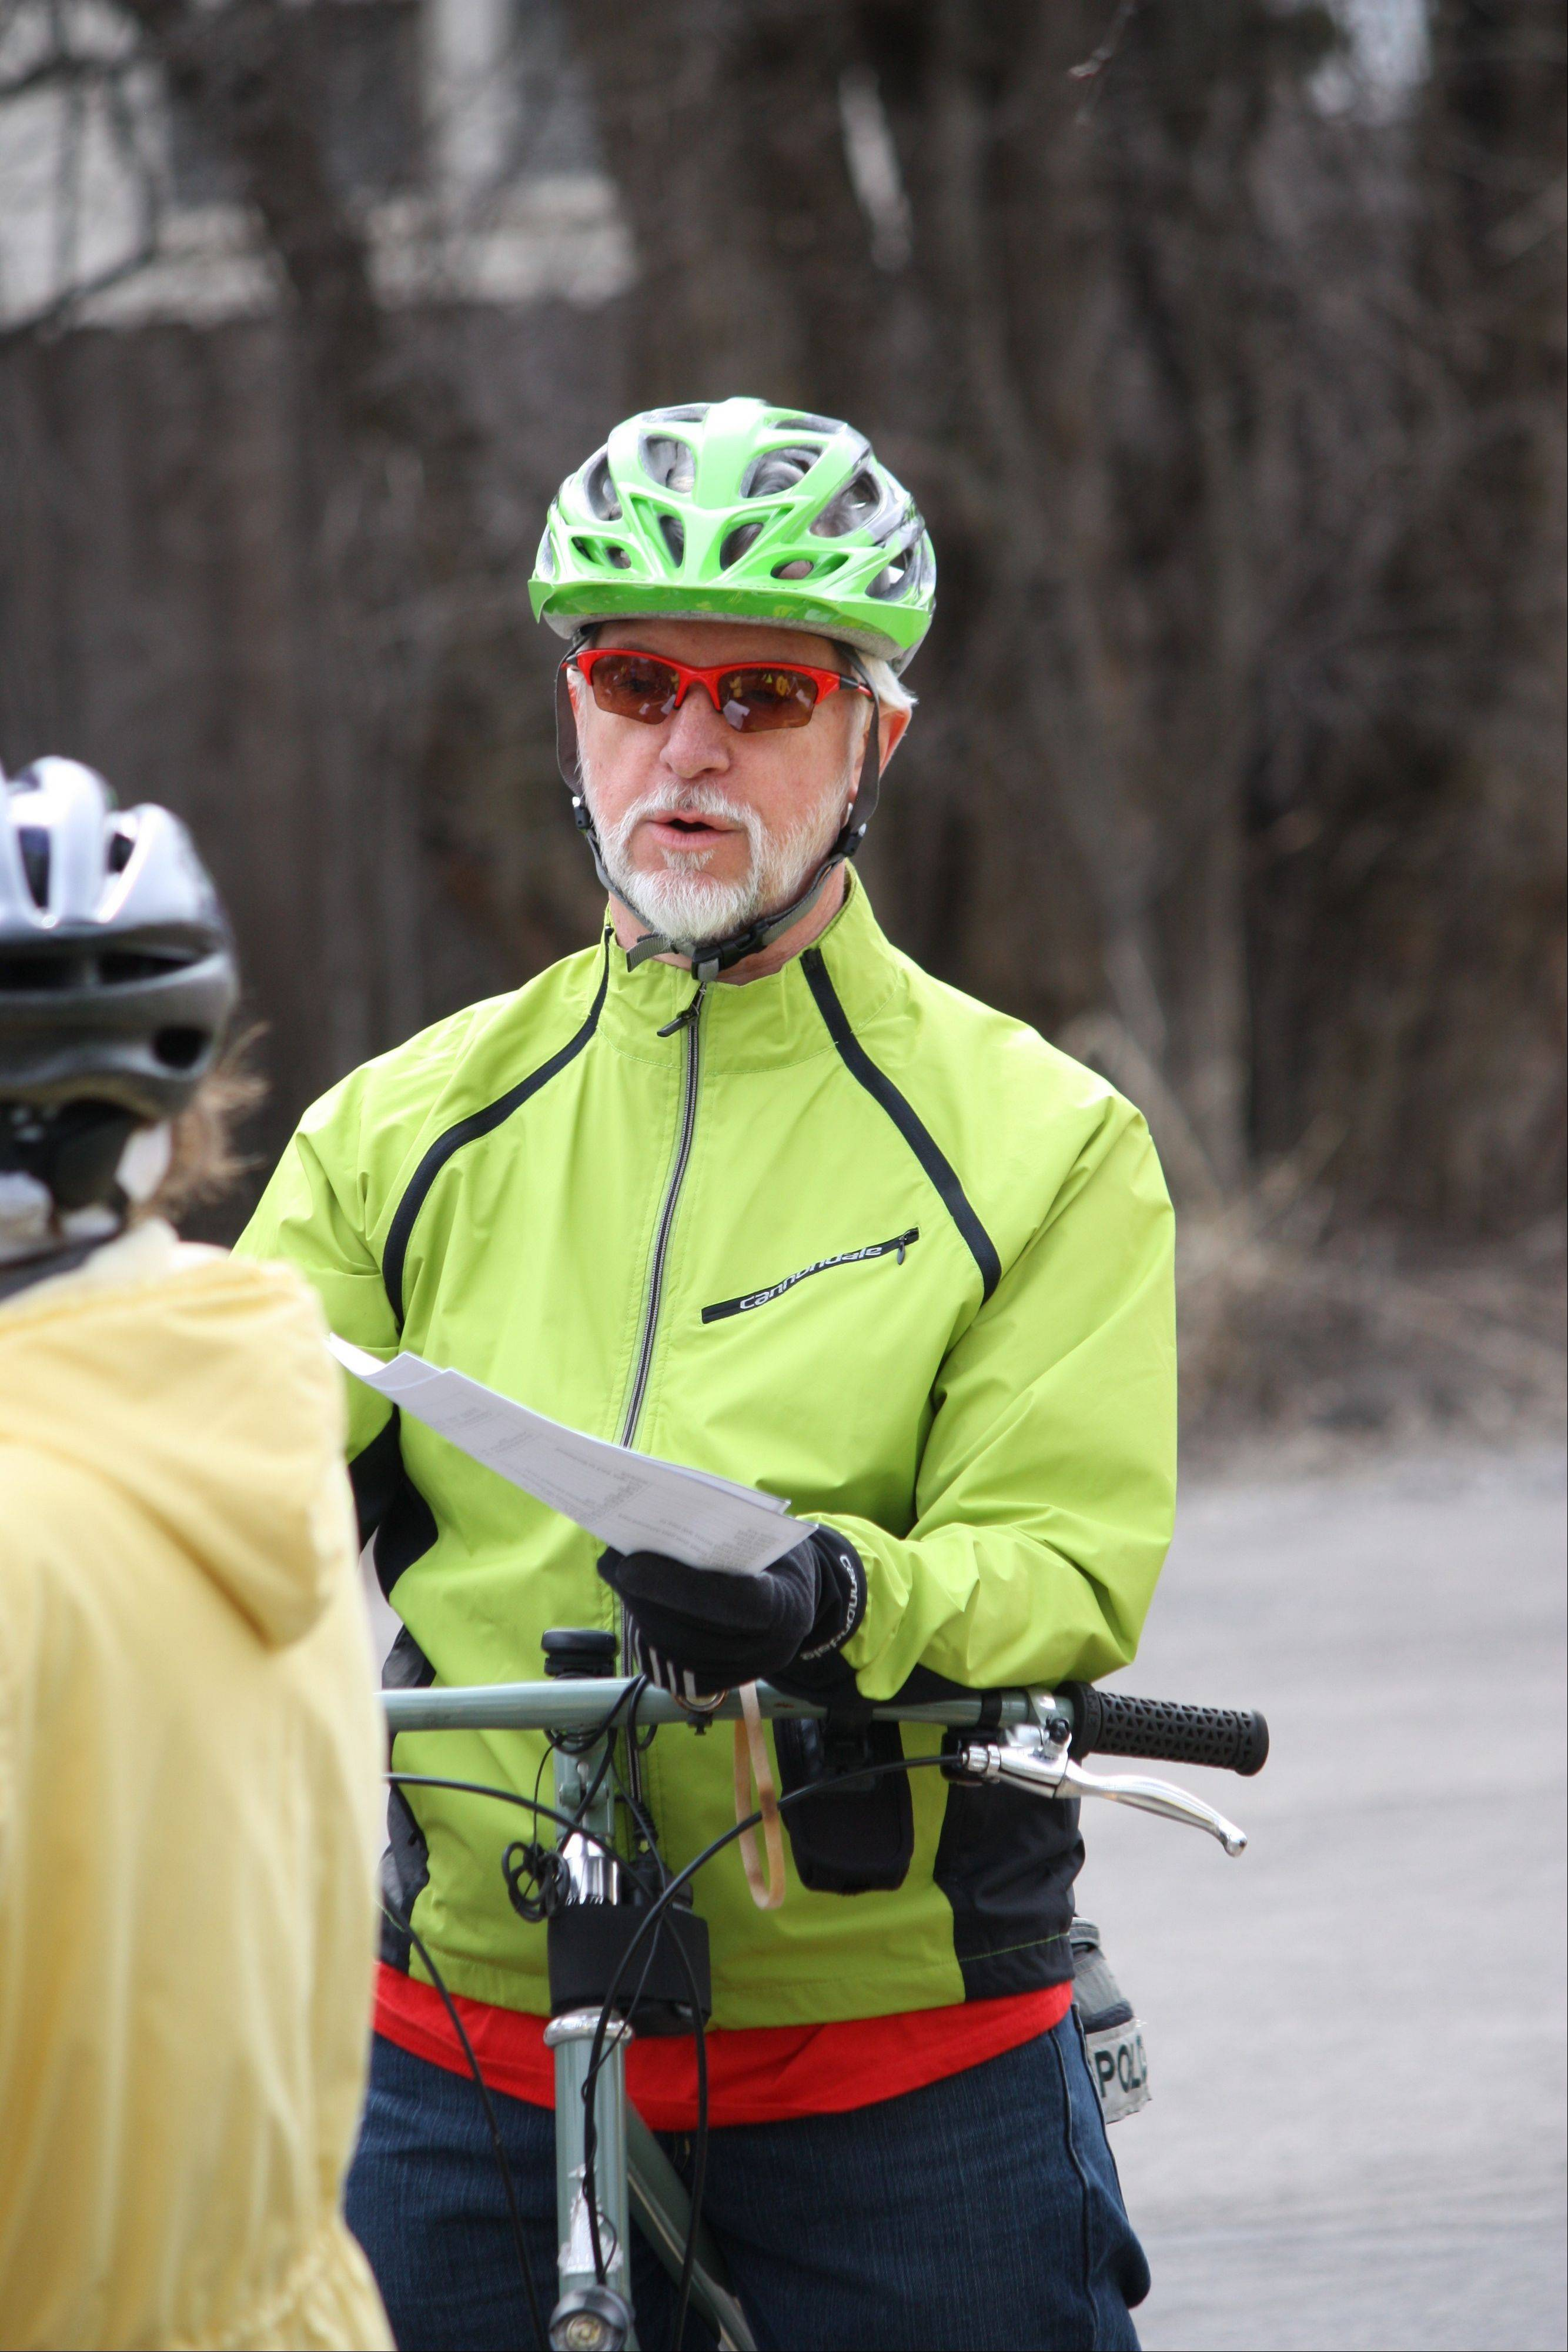 Wayne Mikes from the Palatine Bike Club provides pre-ride instruction for the 12-mile bike ride, part of the Healthy Living event in Palatine April 6.